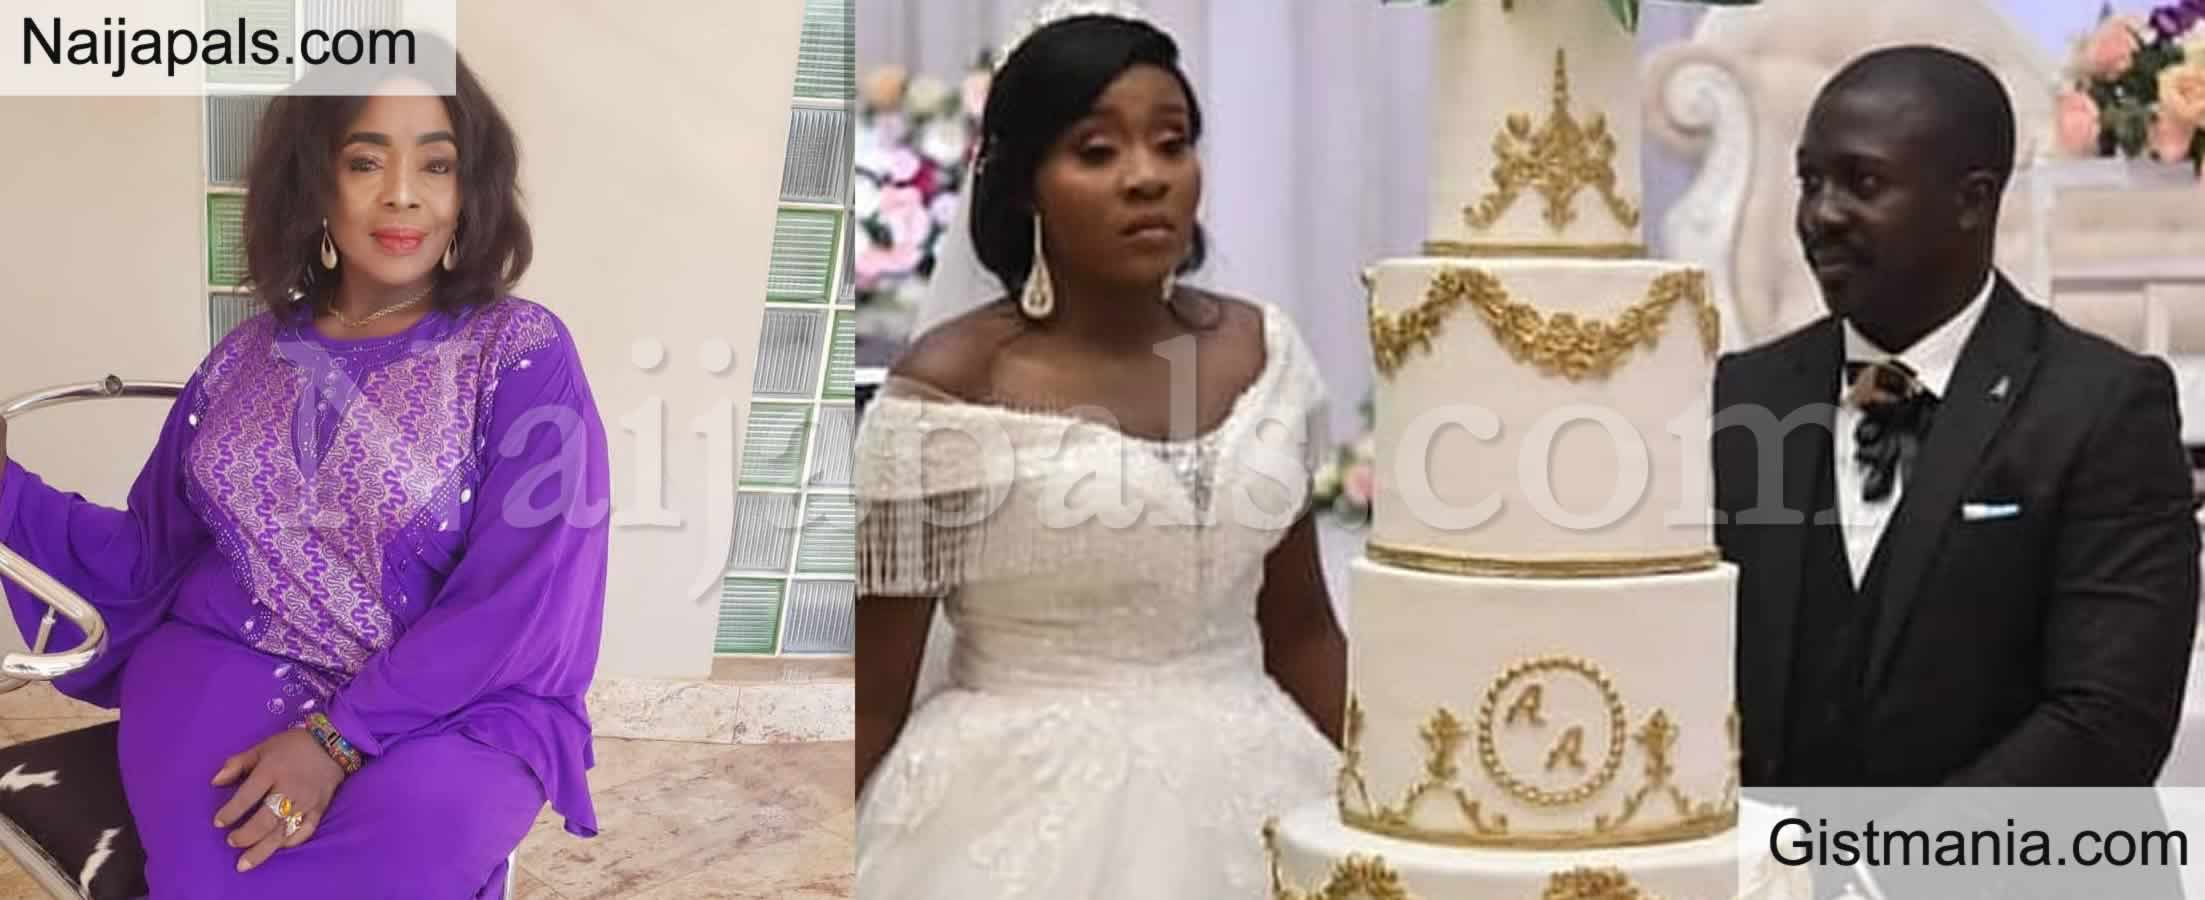 <img alt='.' class='lazyload' data-src='https://img.gistmania.com/emot/news.gif' /> Photos: <b>Actress Rita Edochie's Daughter, Amanda Ties The Knot With Fiance</b>